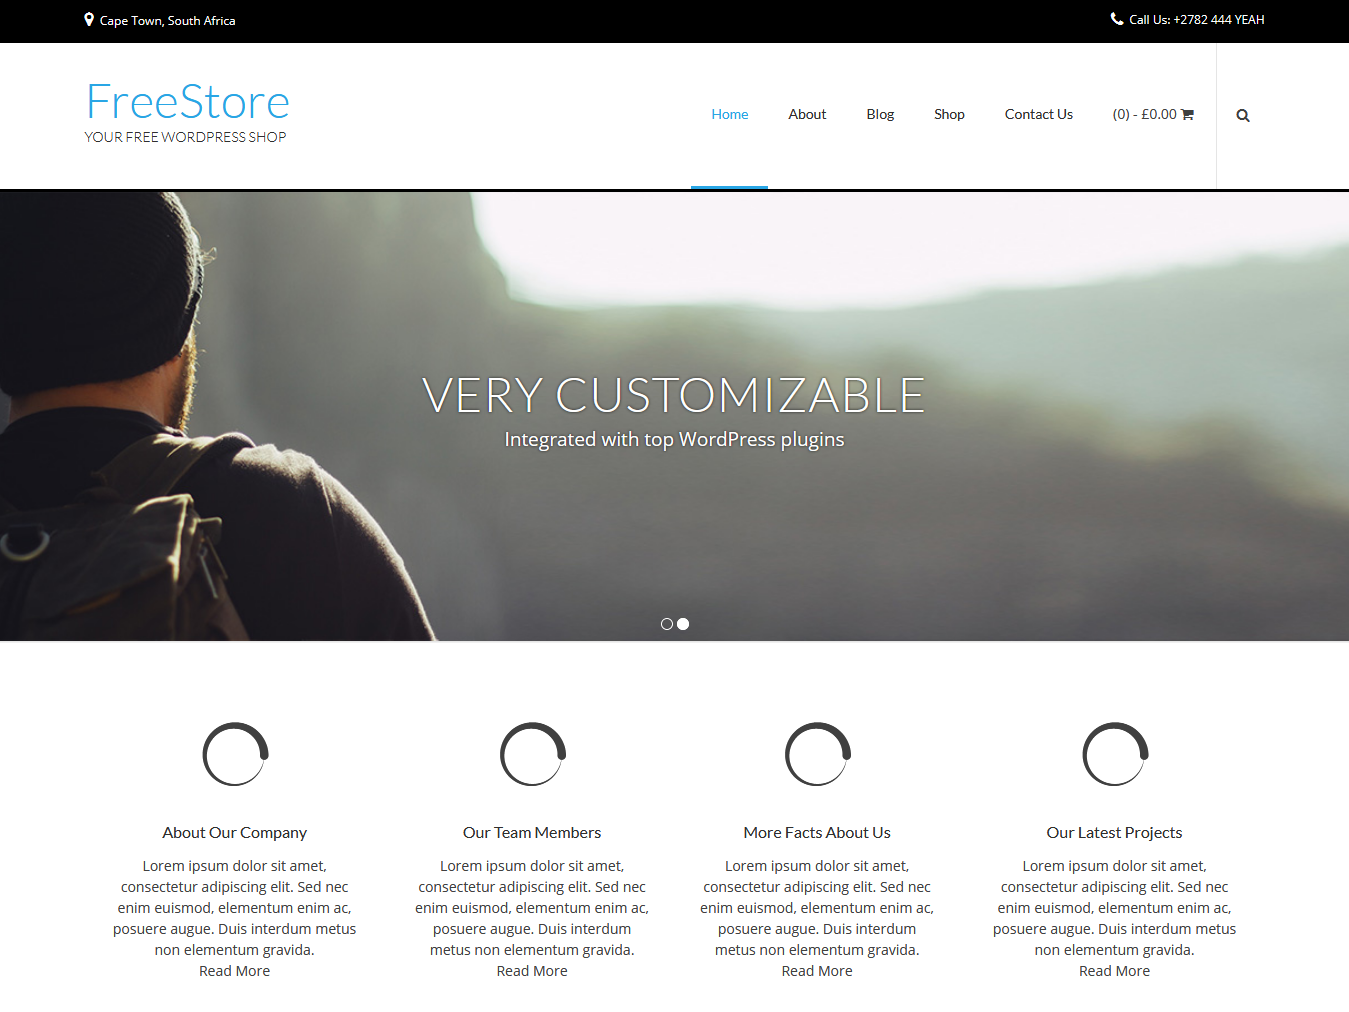 FreeStore - Best Free WordPress WooCommerce Theme